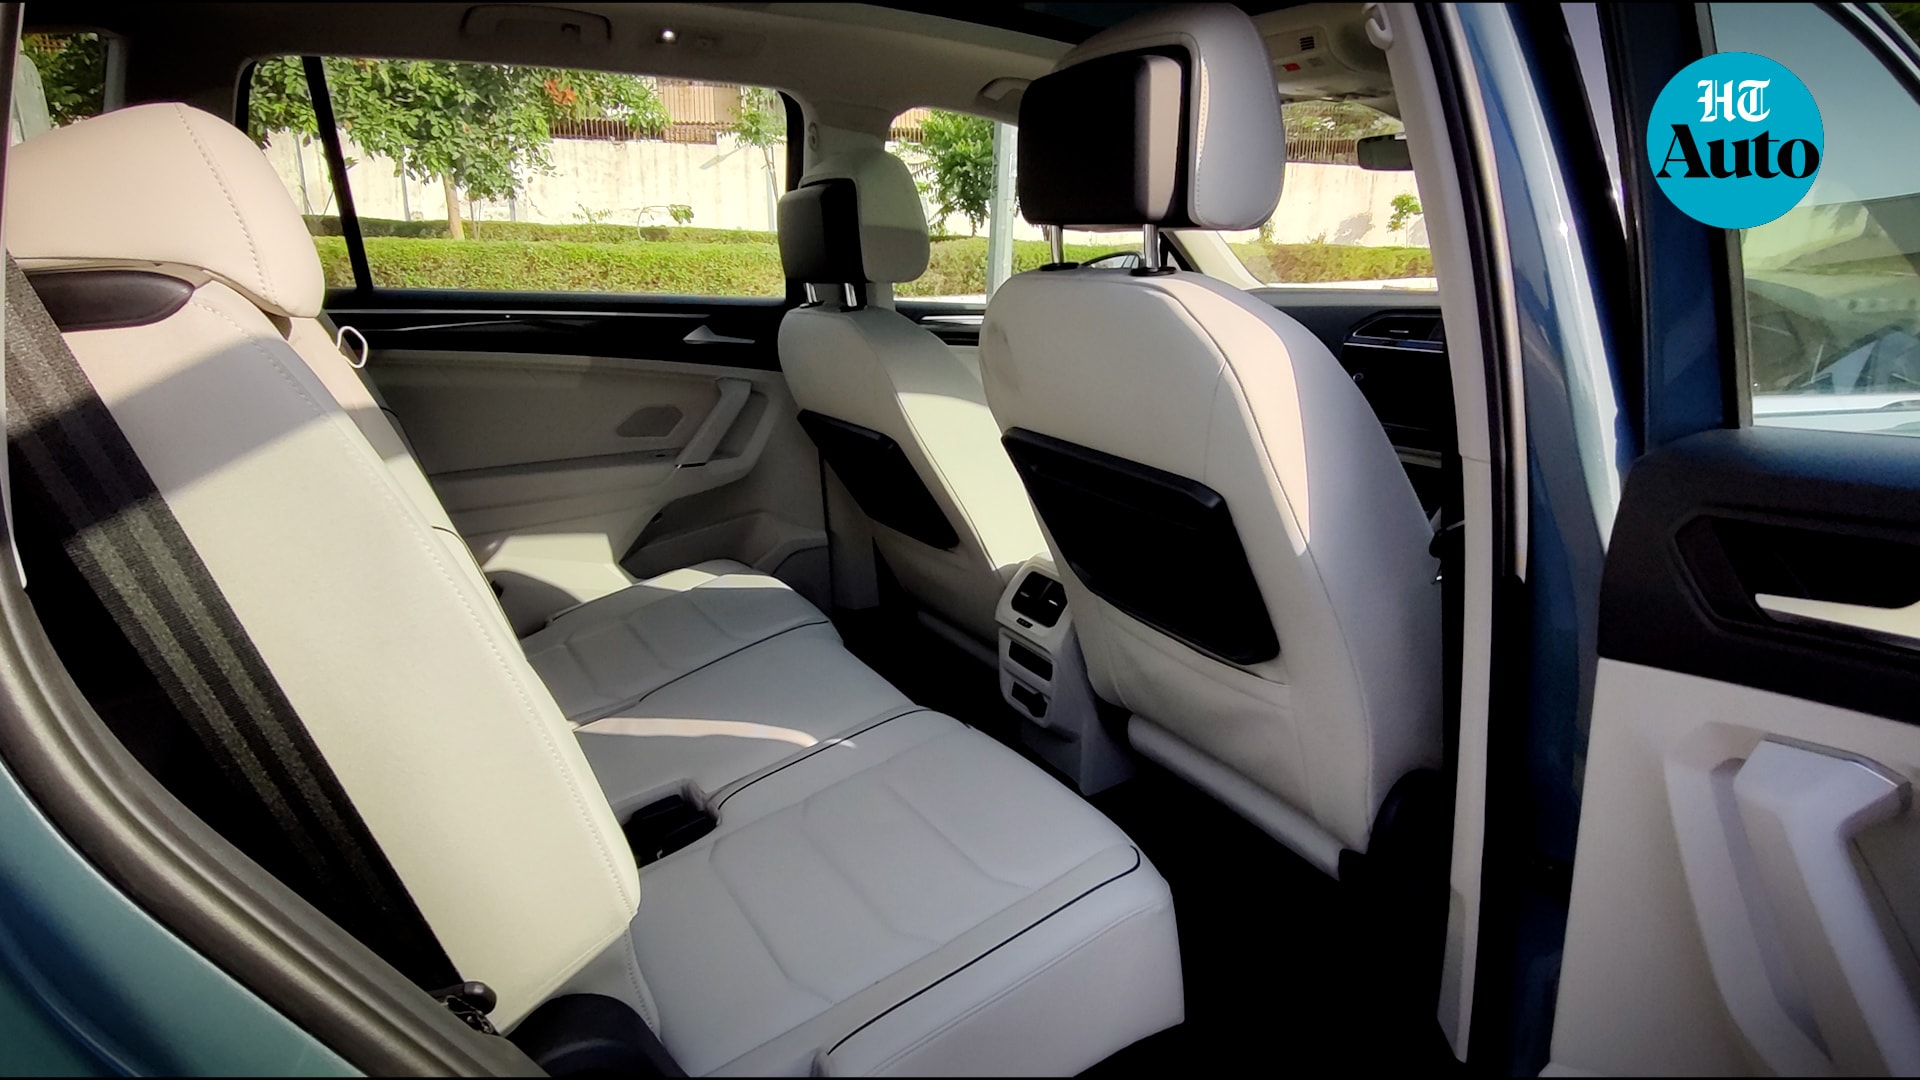 Leather seats, powered-driver seat and three-zone climate control are some of the features offered. The back of the front seats also offer fold-away trays for a more airline-like experience.